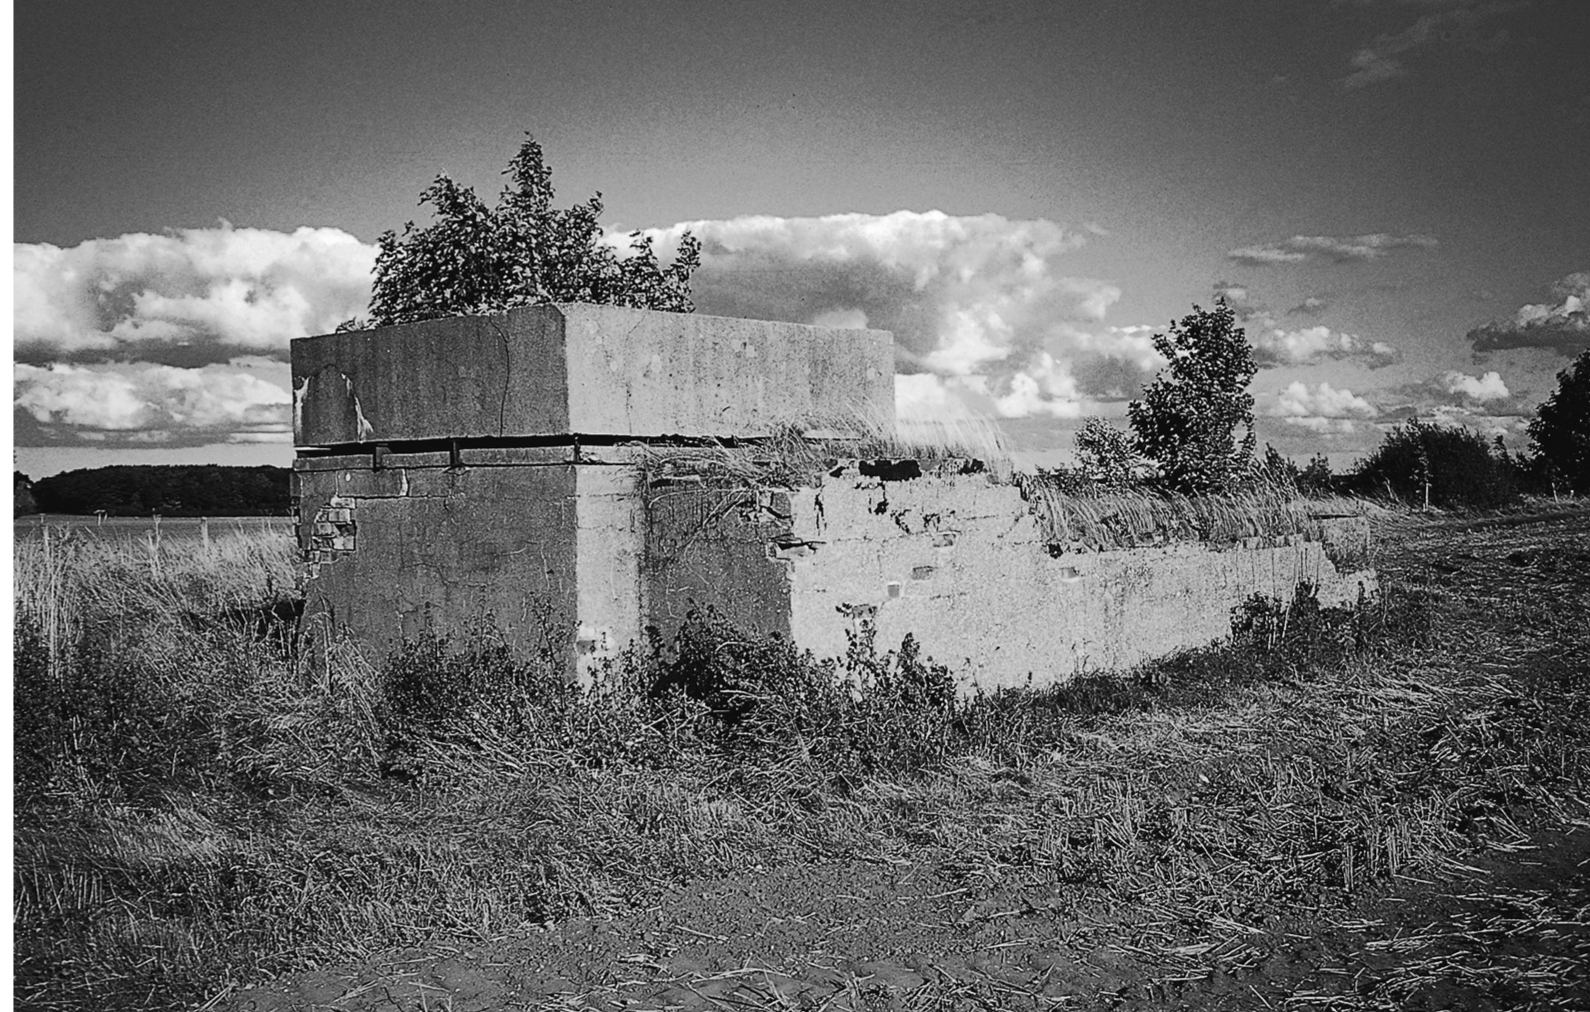 A black and white photograph showing a fortified concrete structure, overgrown with small trees and scrub.